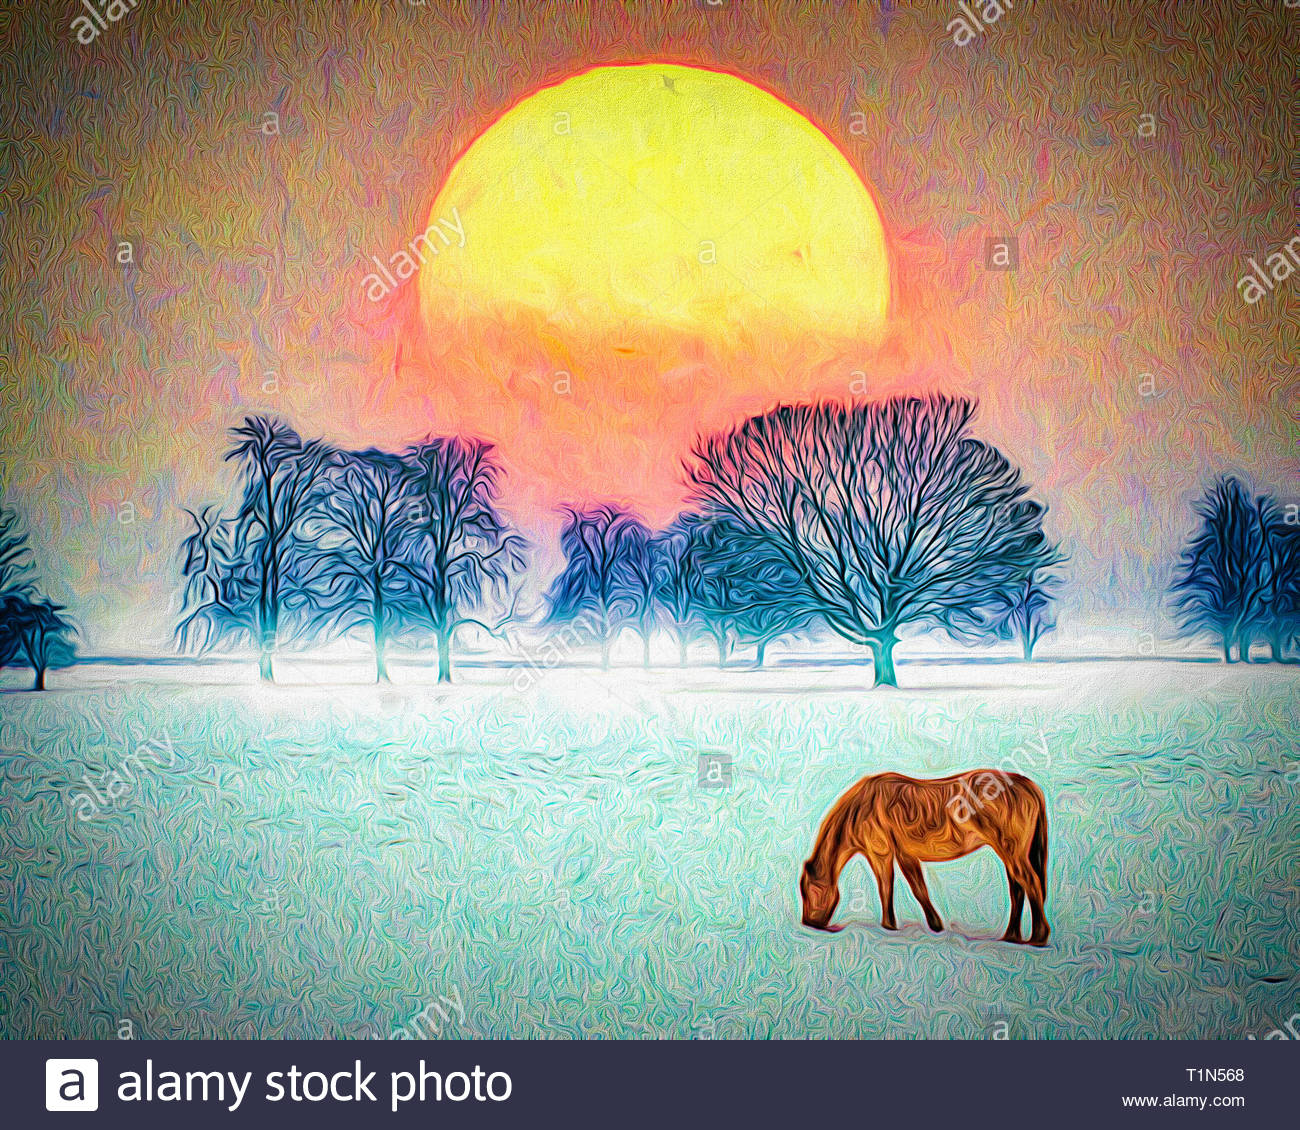 DIGITAL ART: Winter Scene at West Wycombe, Buckinghamshire, Great Britain - Stock Image